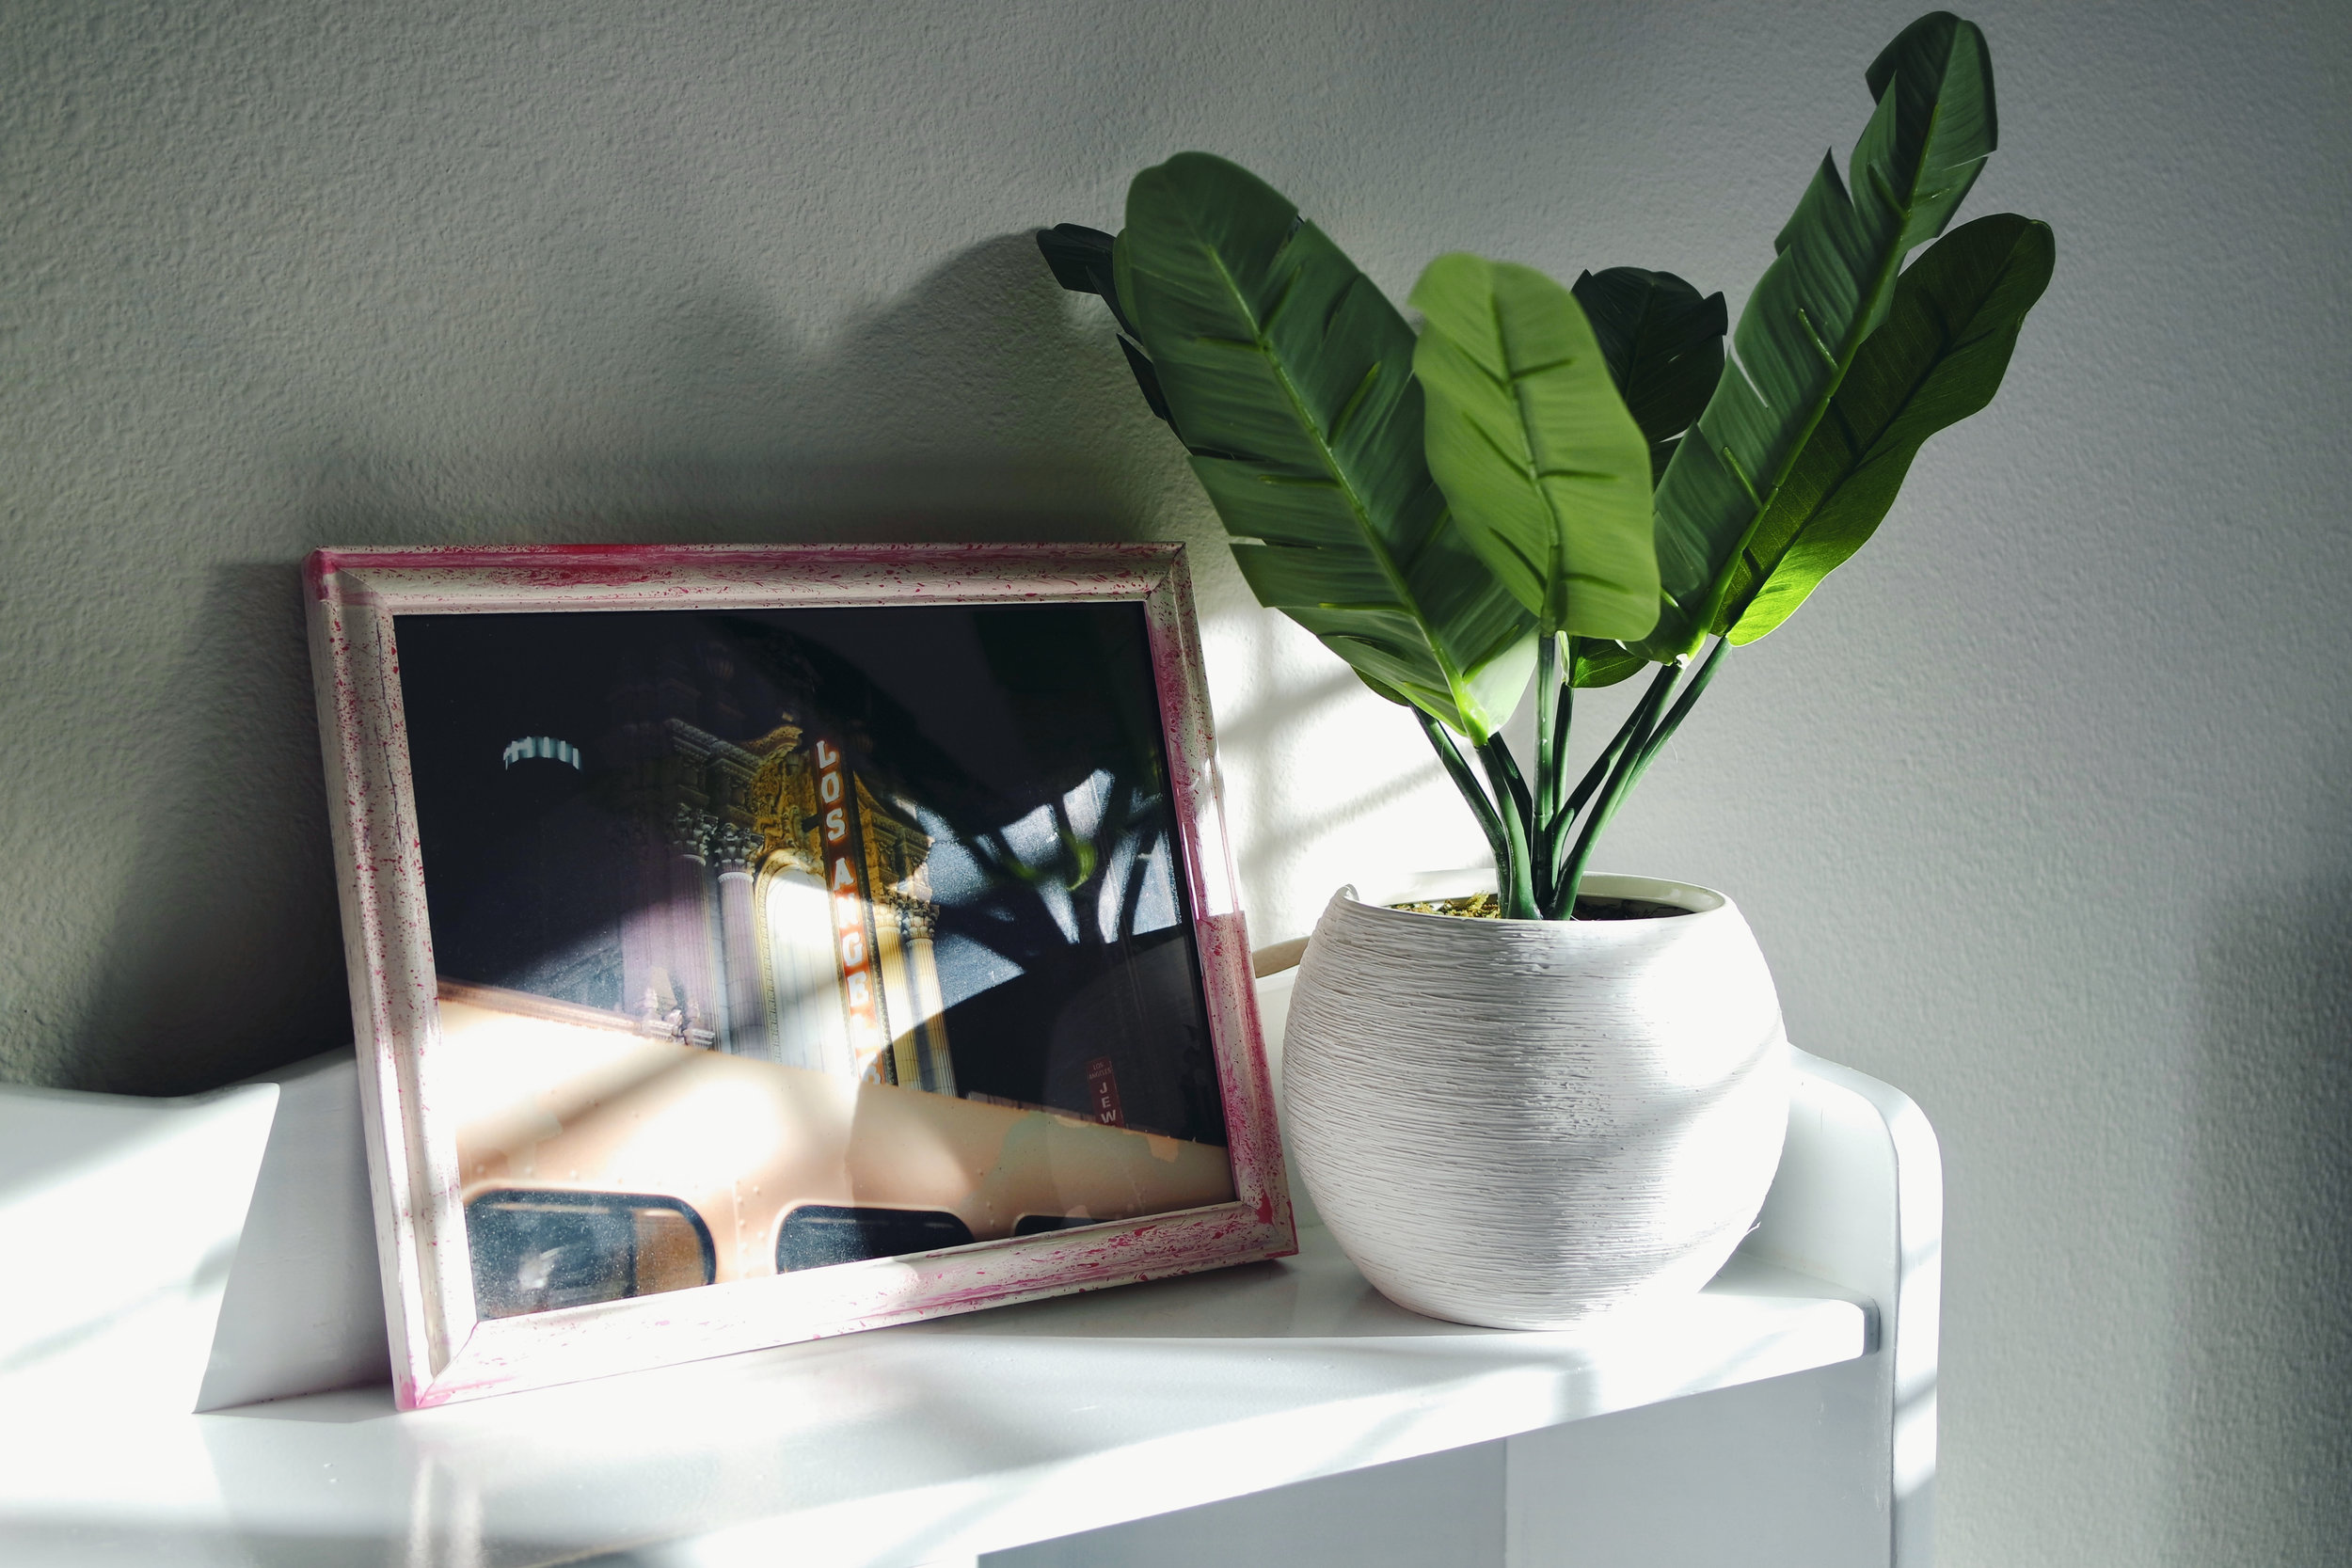 Plant & planter from Target.